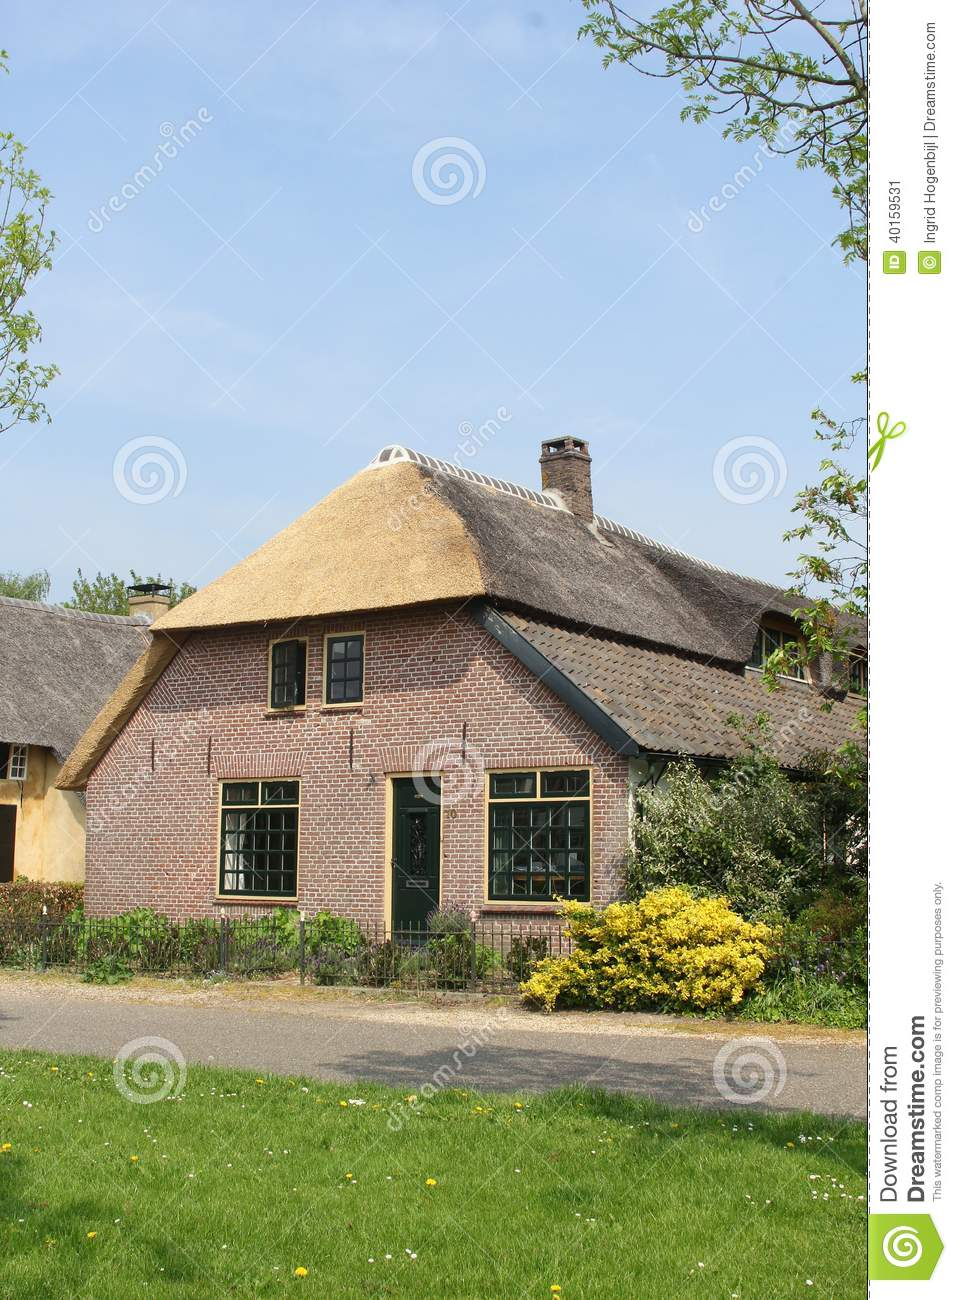 Dutch home in farm style with thatched roof betuwe Farm house netherlands